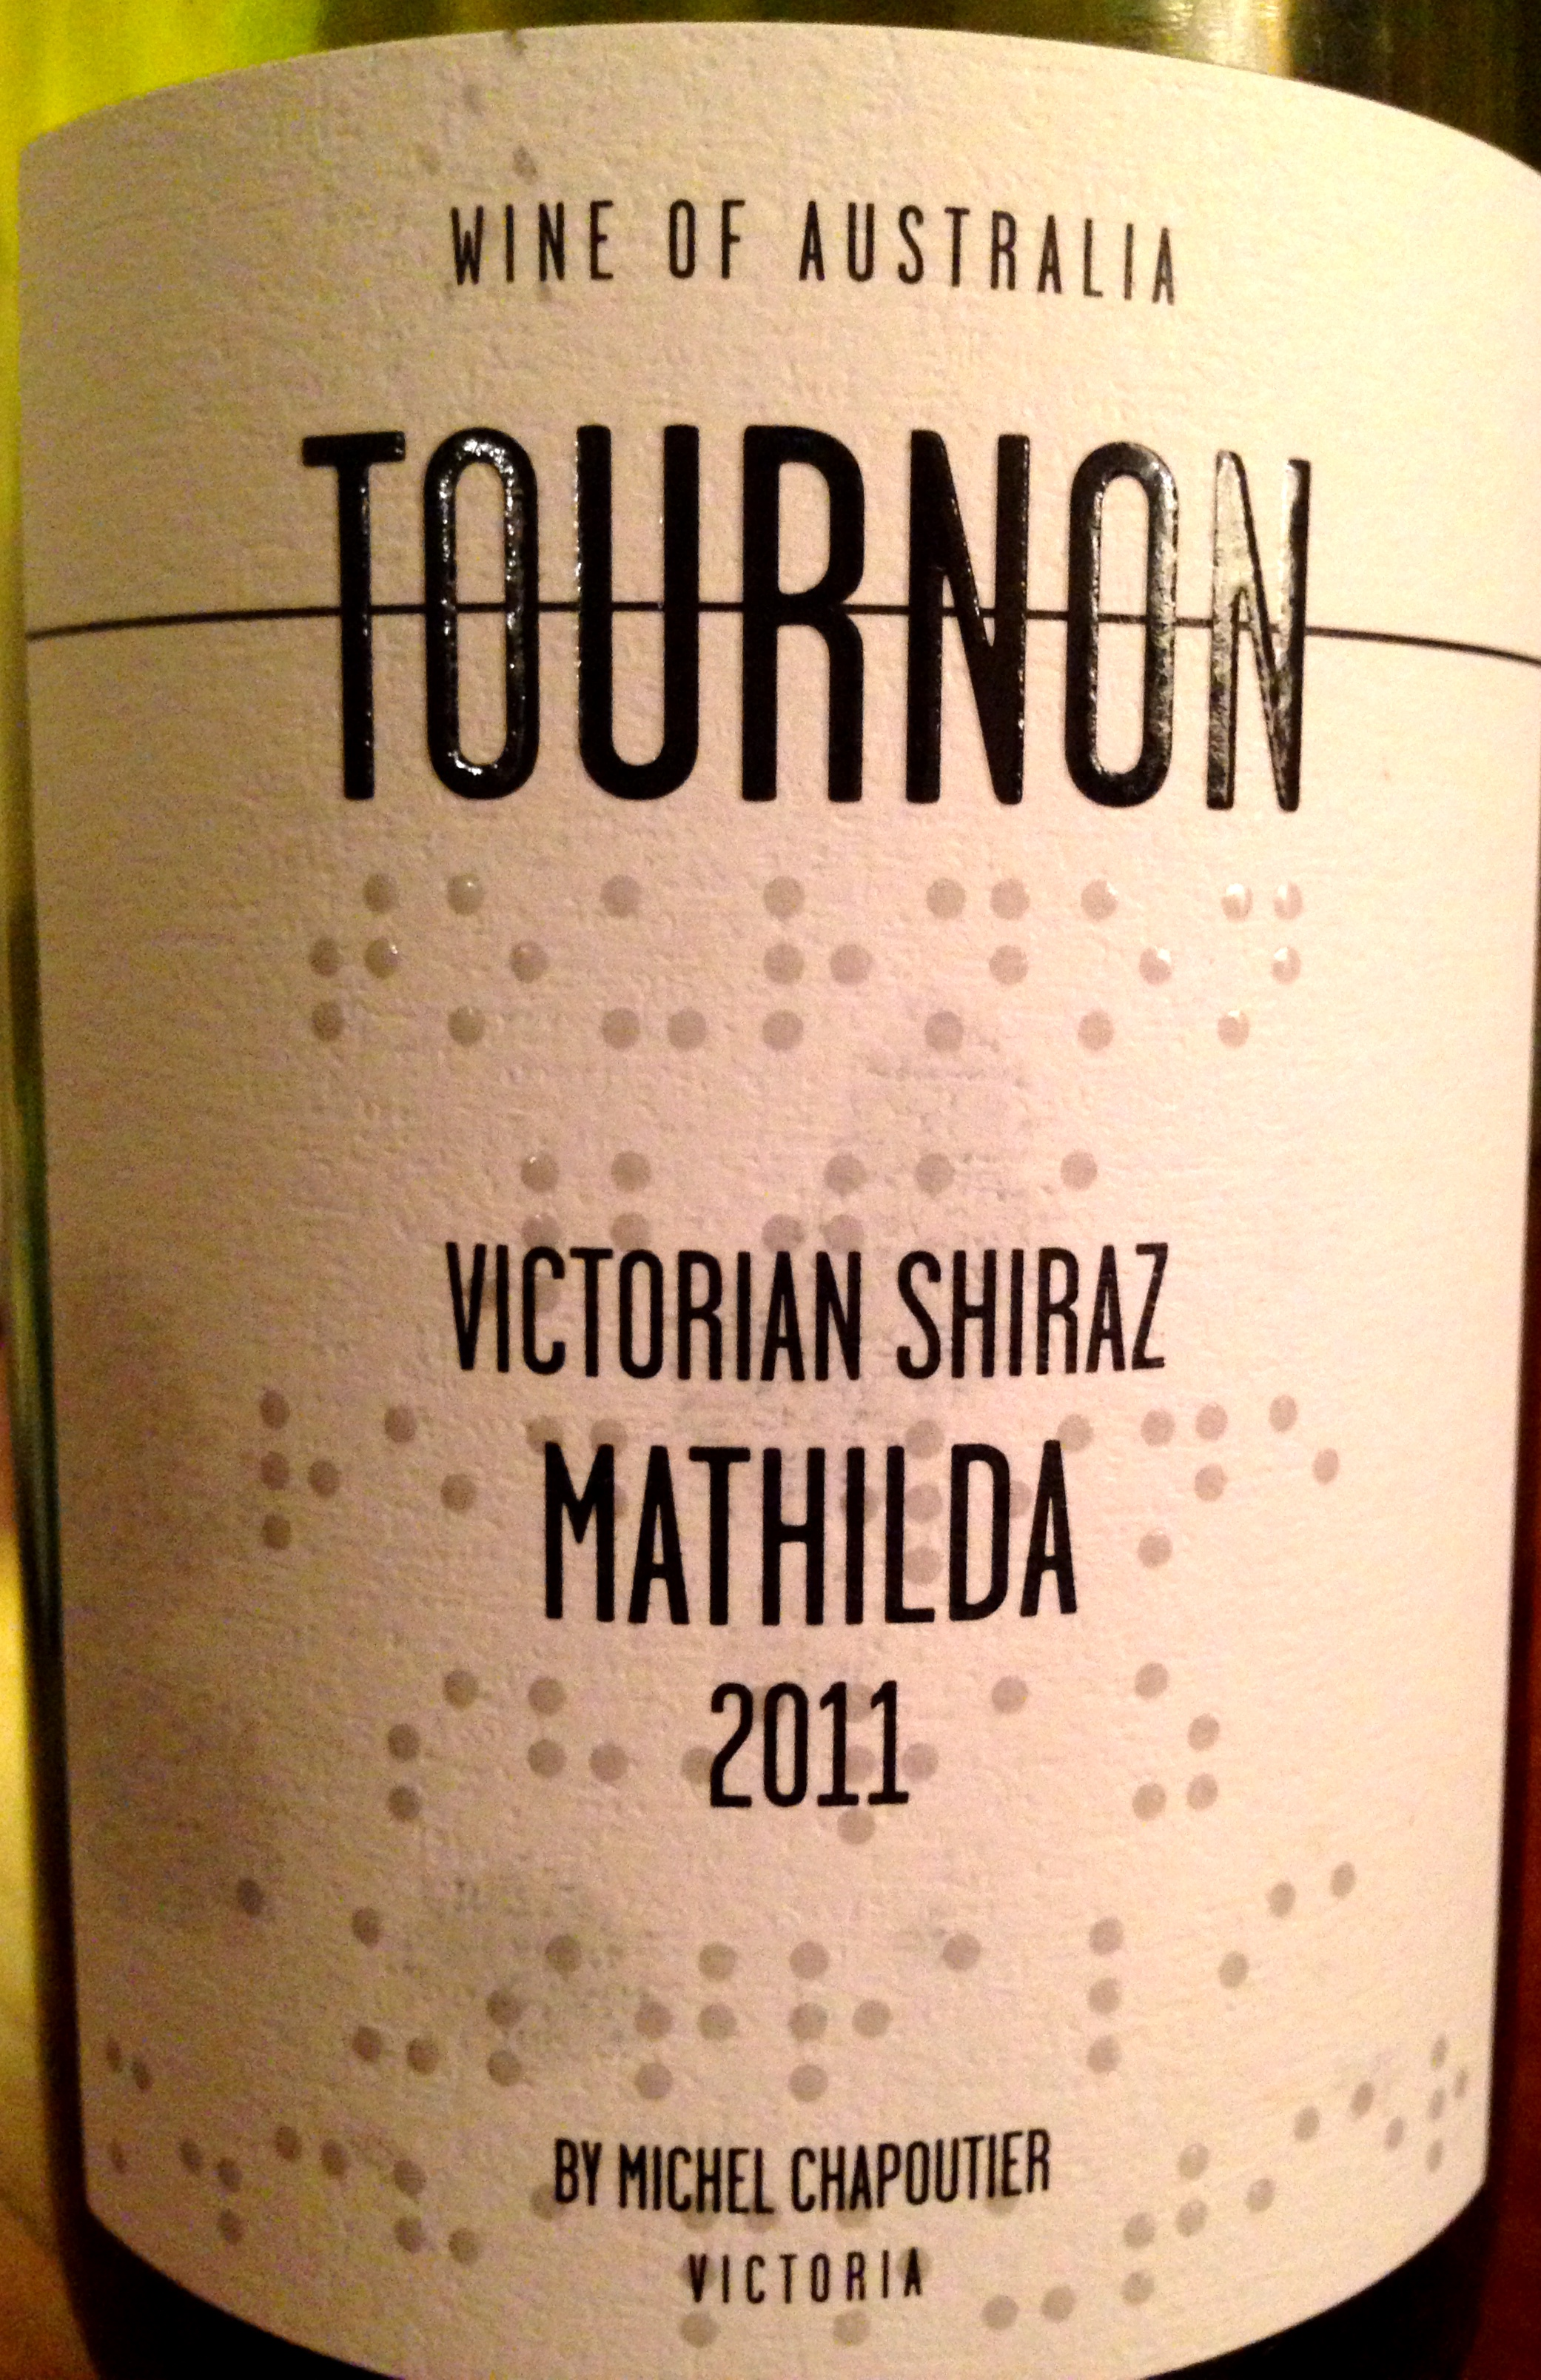 tournon matilda shiraz